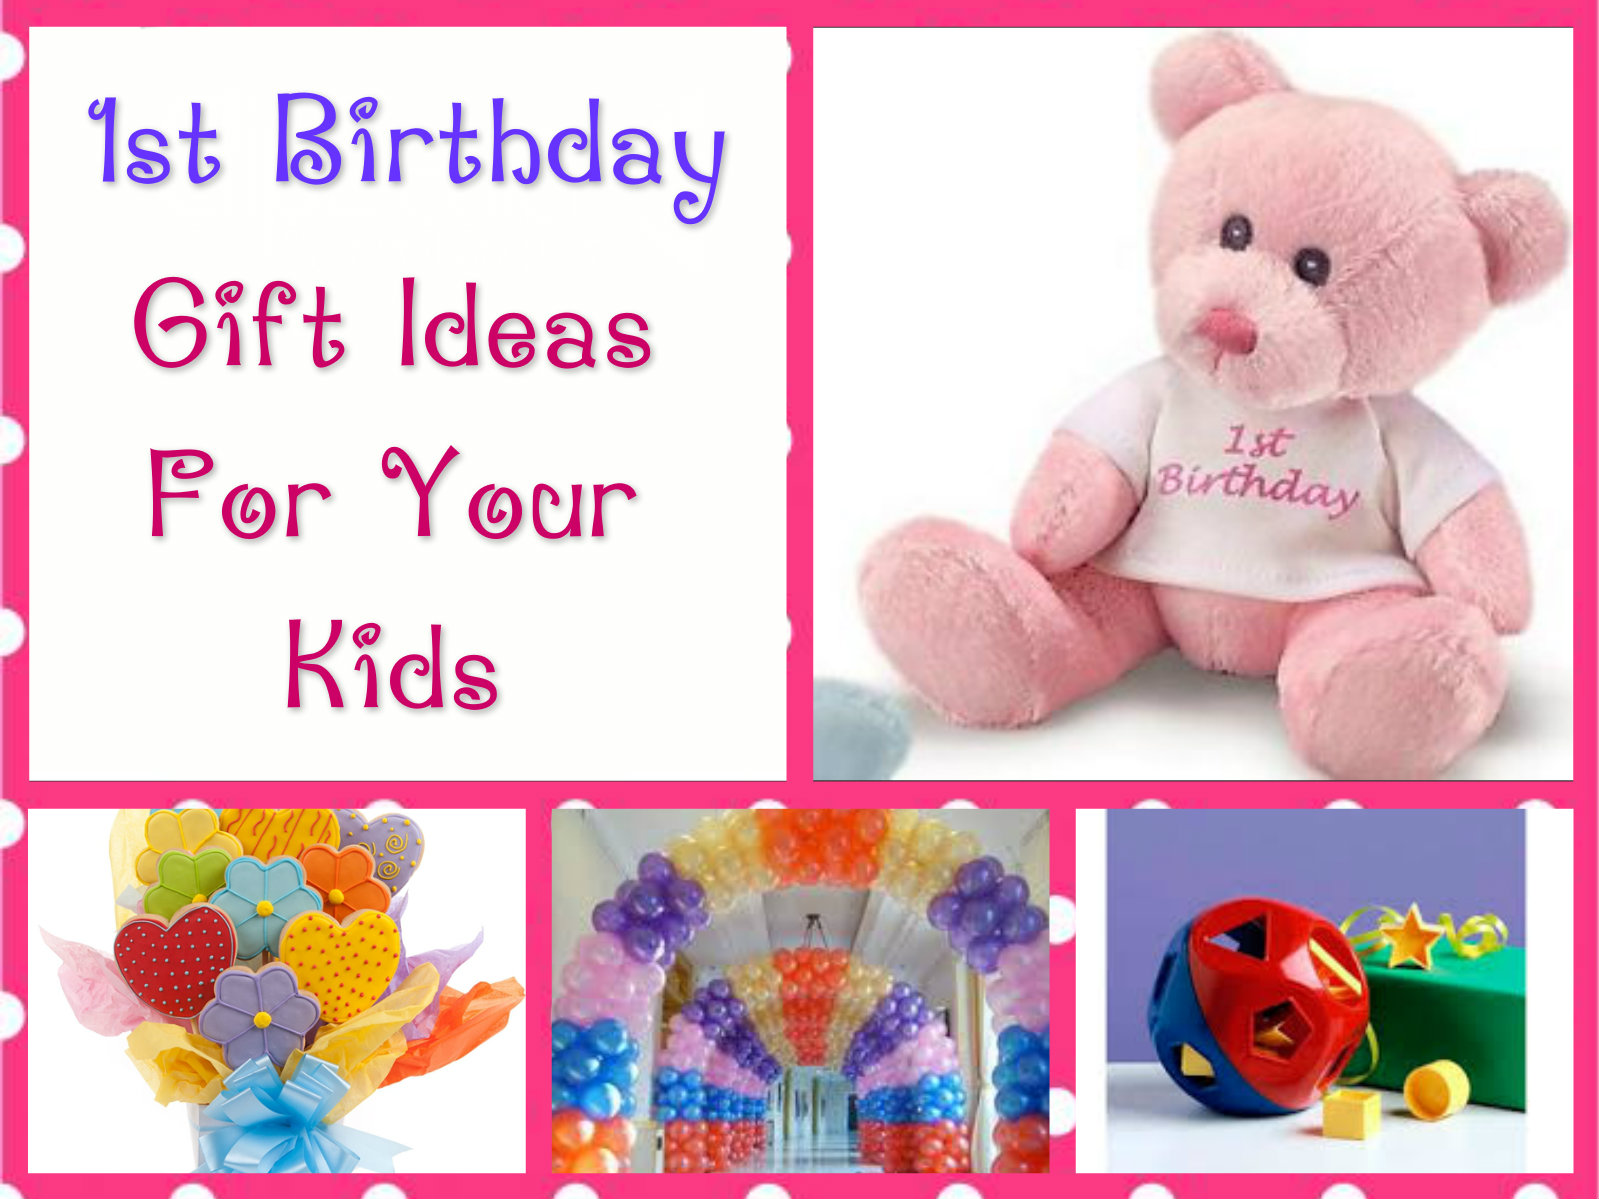 1st Birthday Gift Ideas For Your Kids